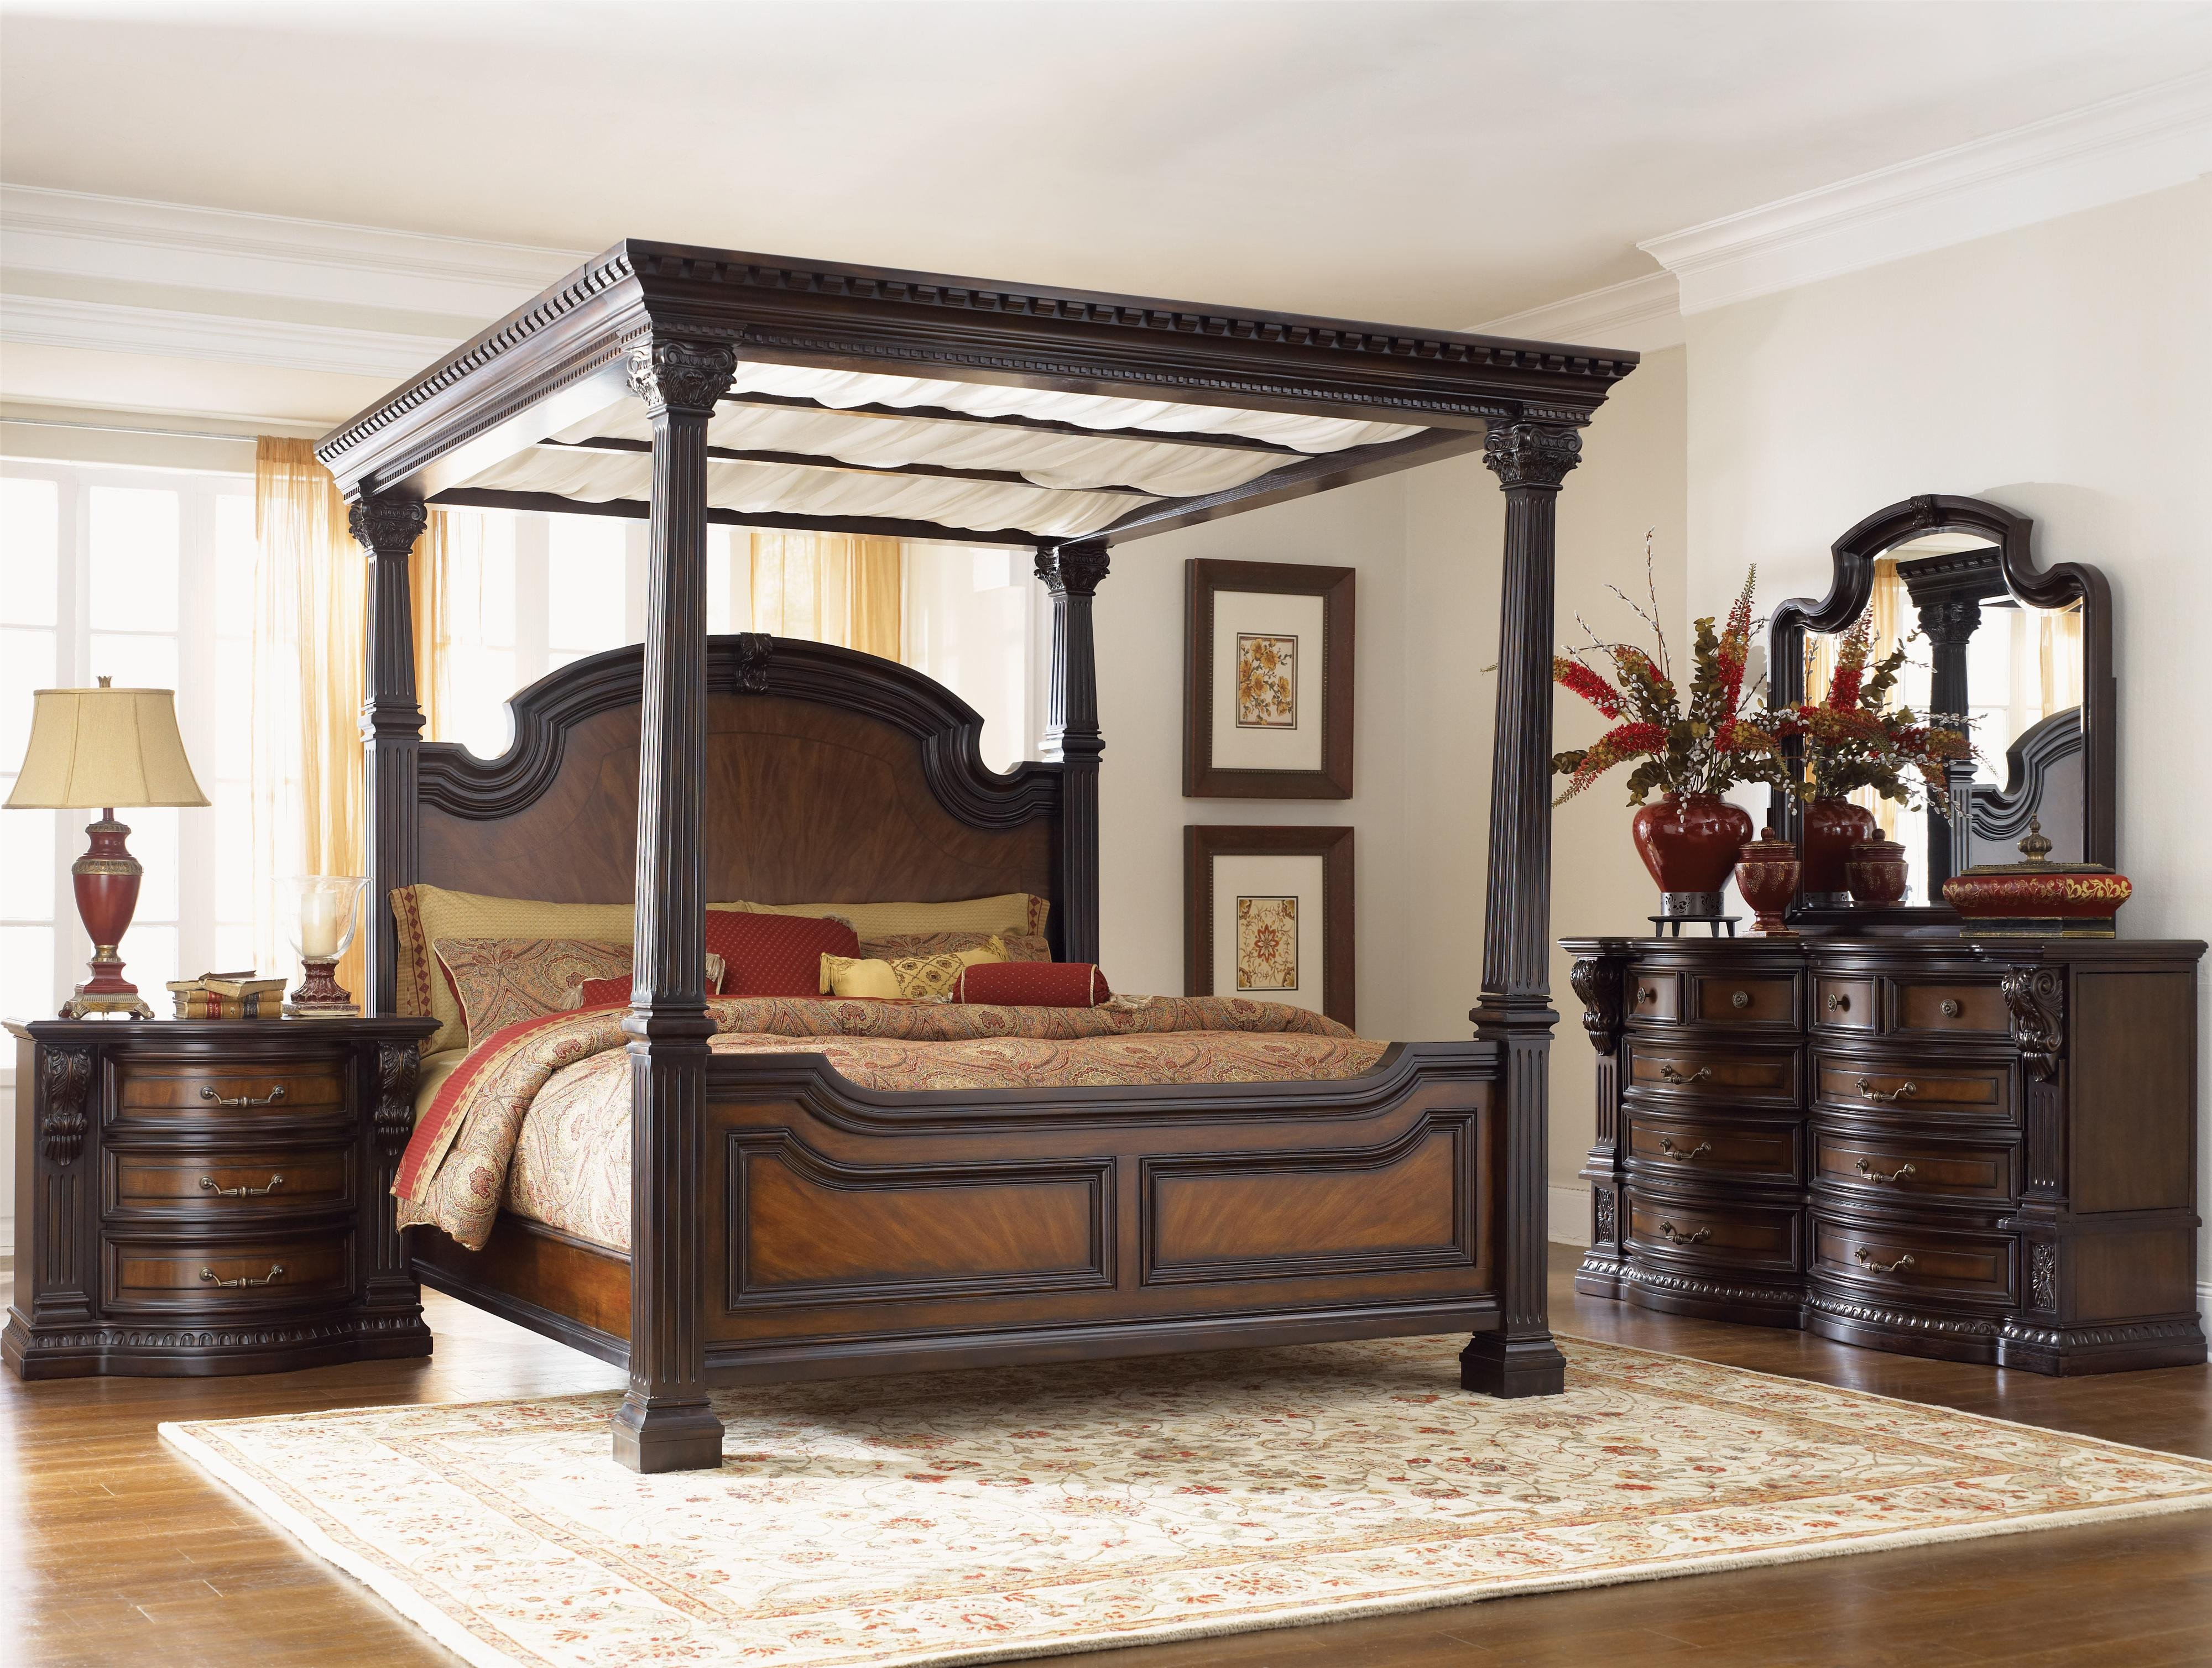 Girl Canopy Bedroom Set Lovely Grand Estates 02 by Fairmont Designs Royal Furniture